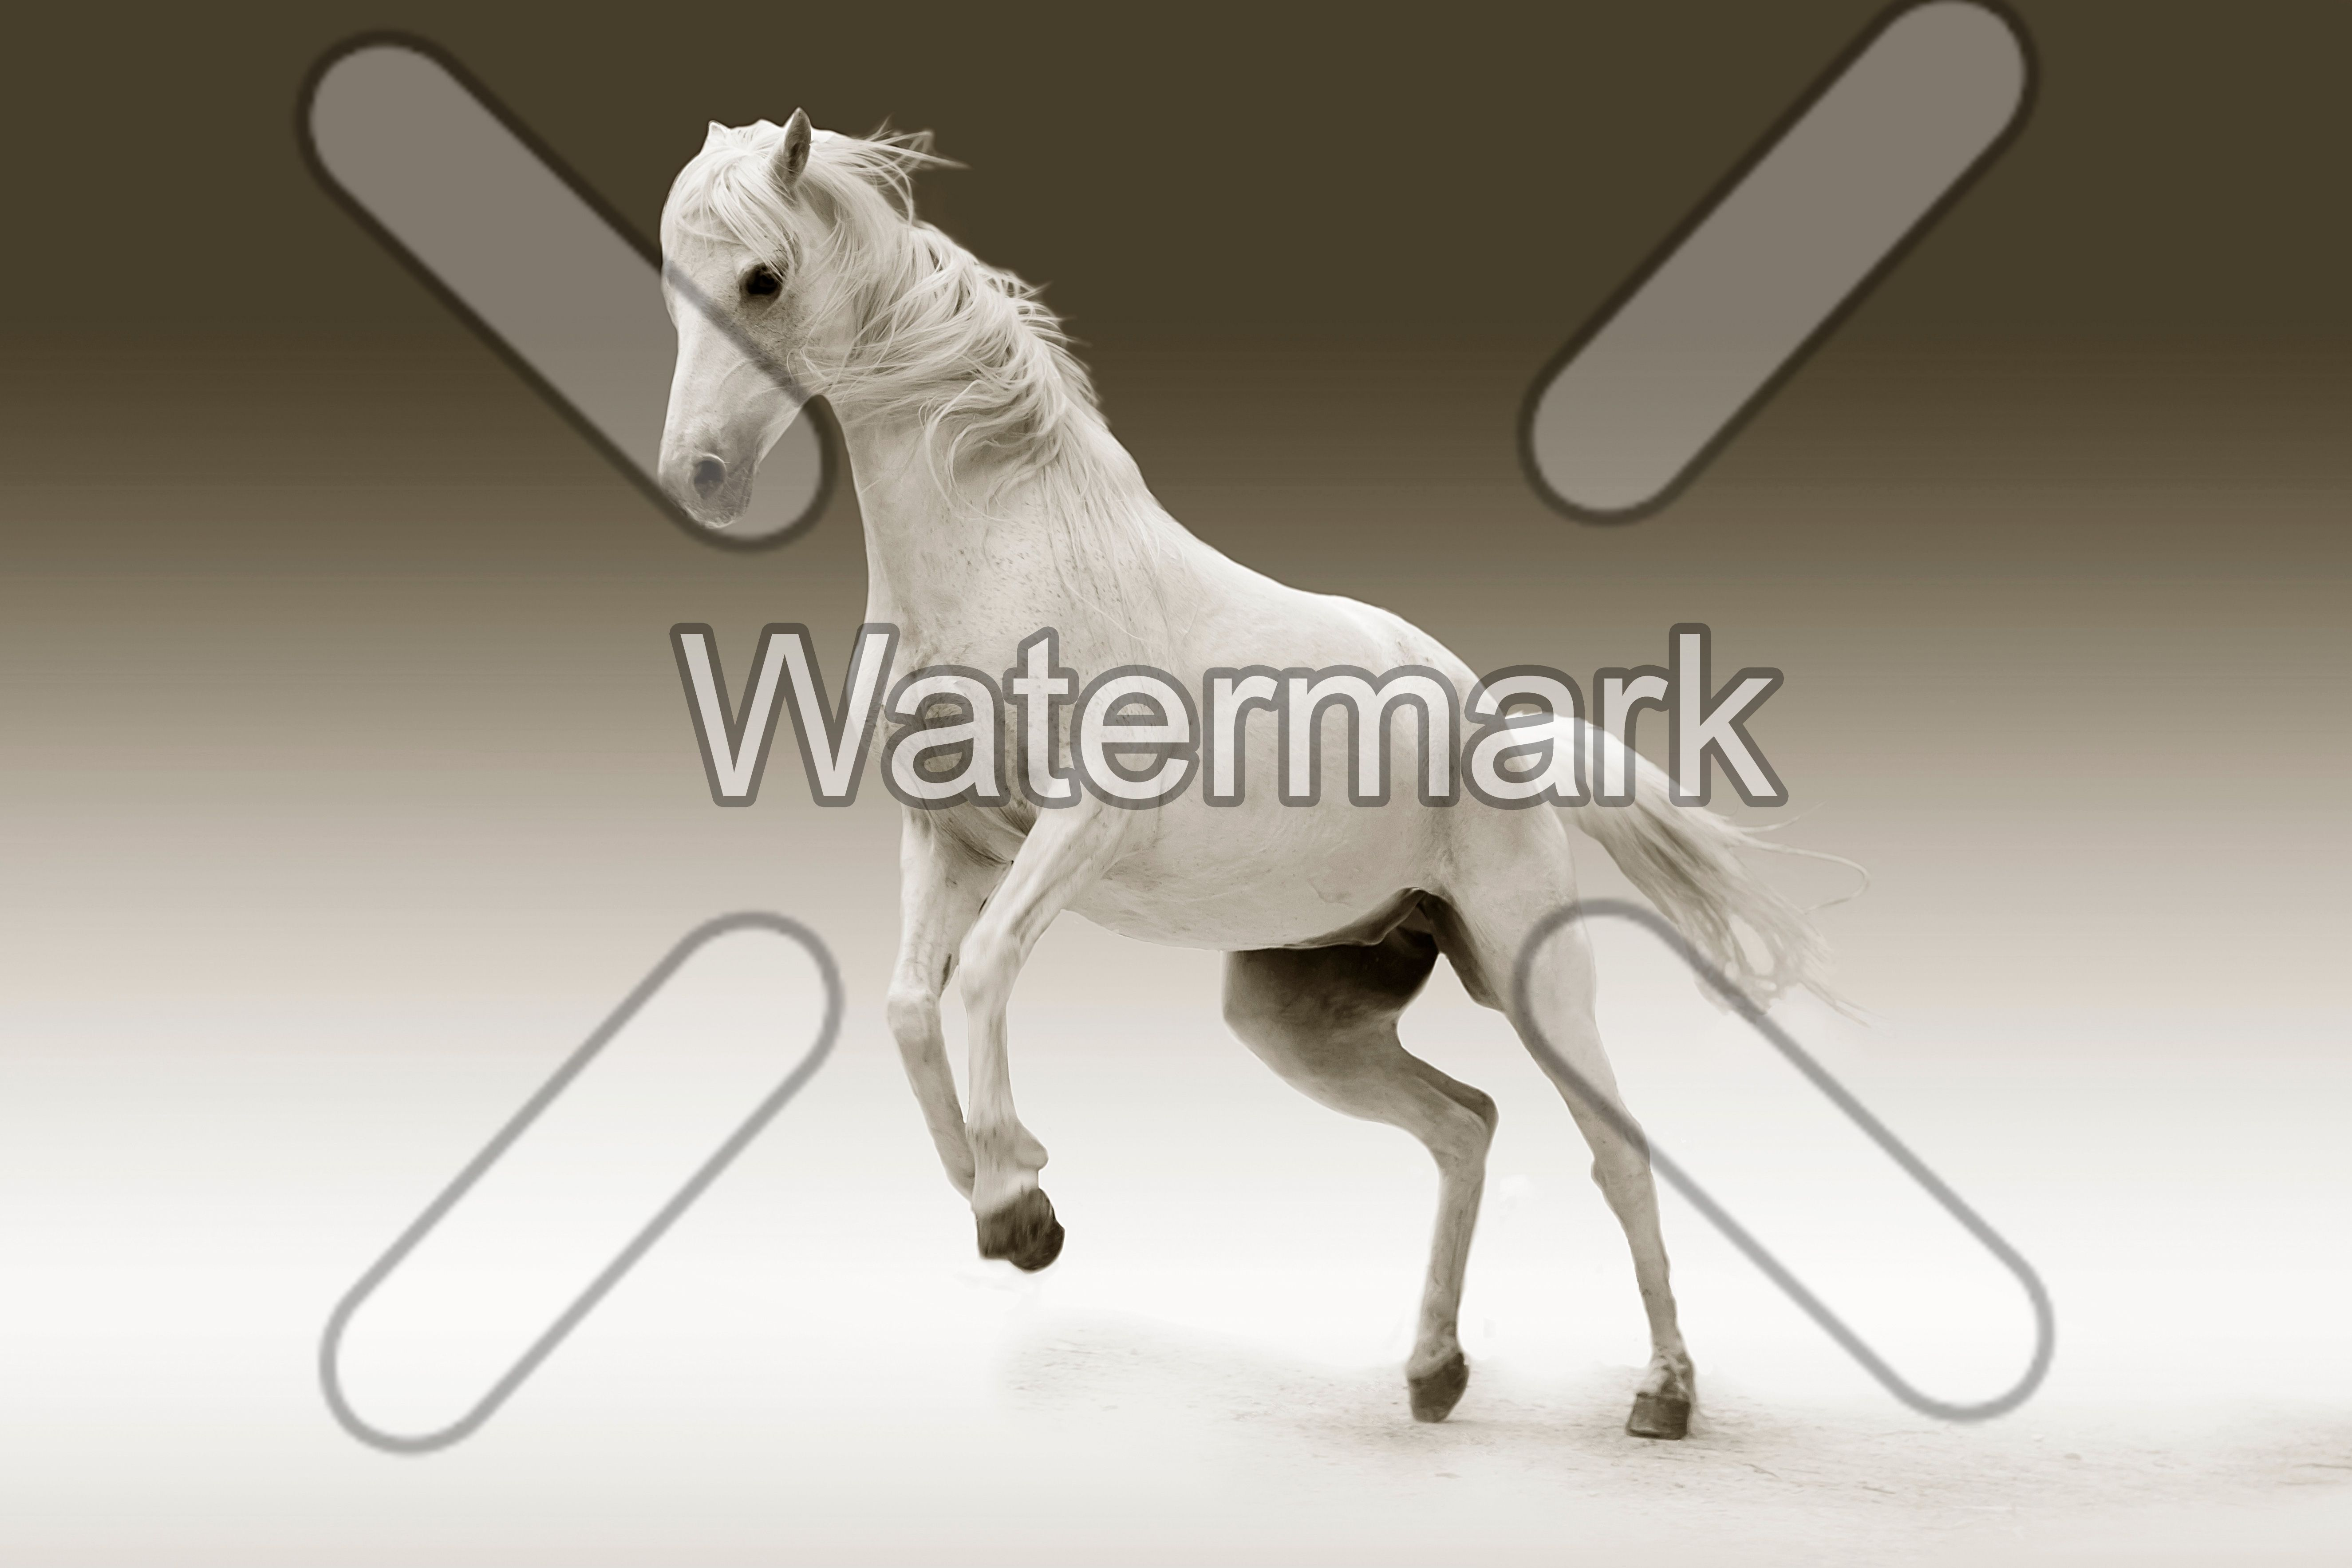 Automatic watermark position.